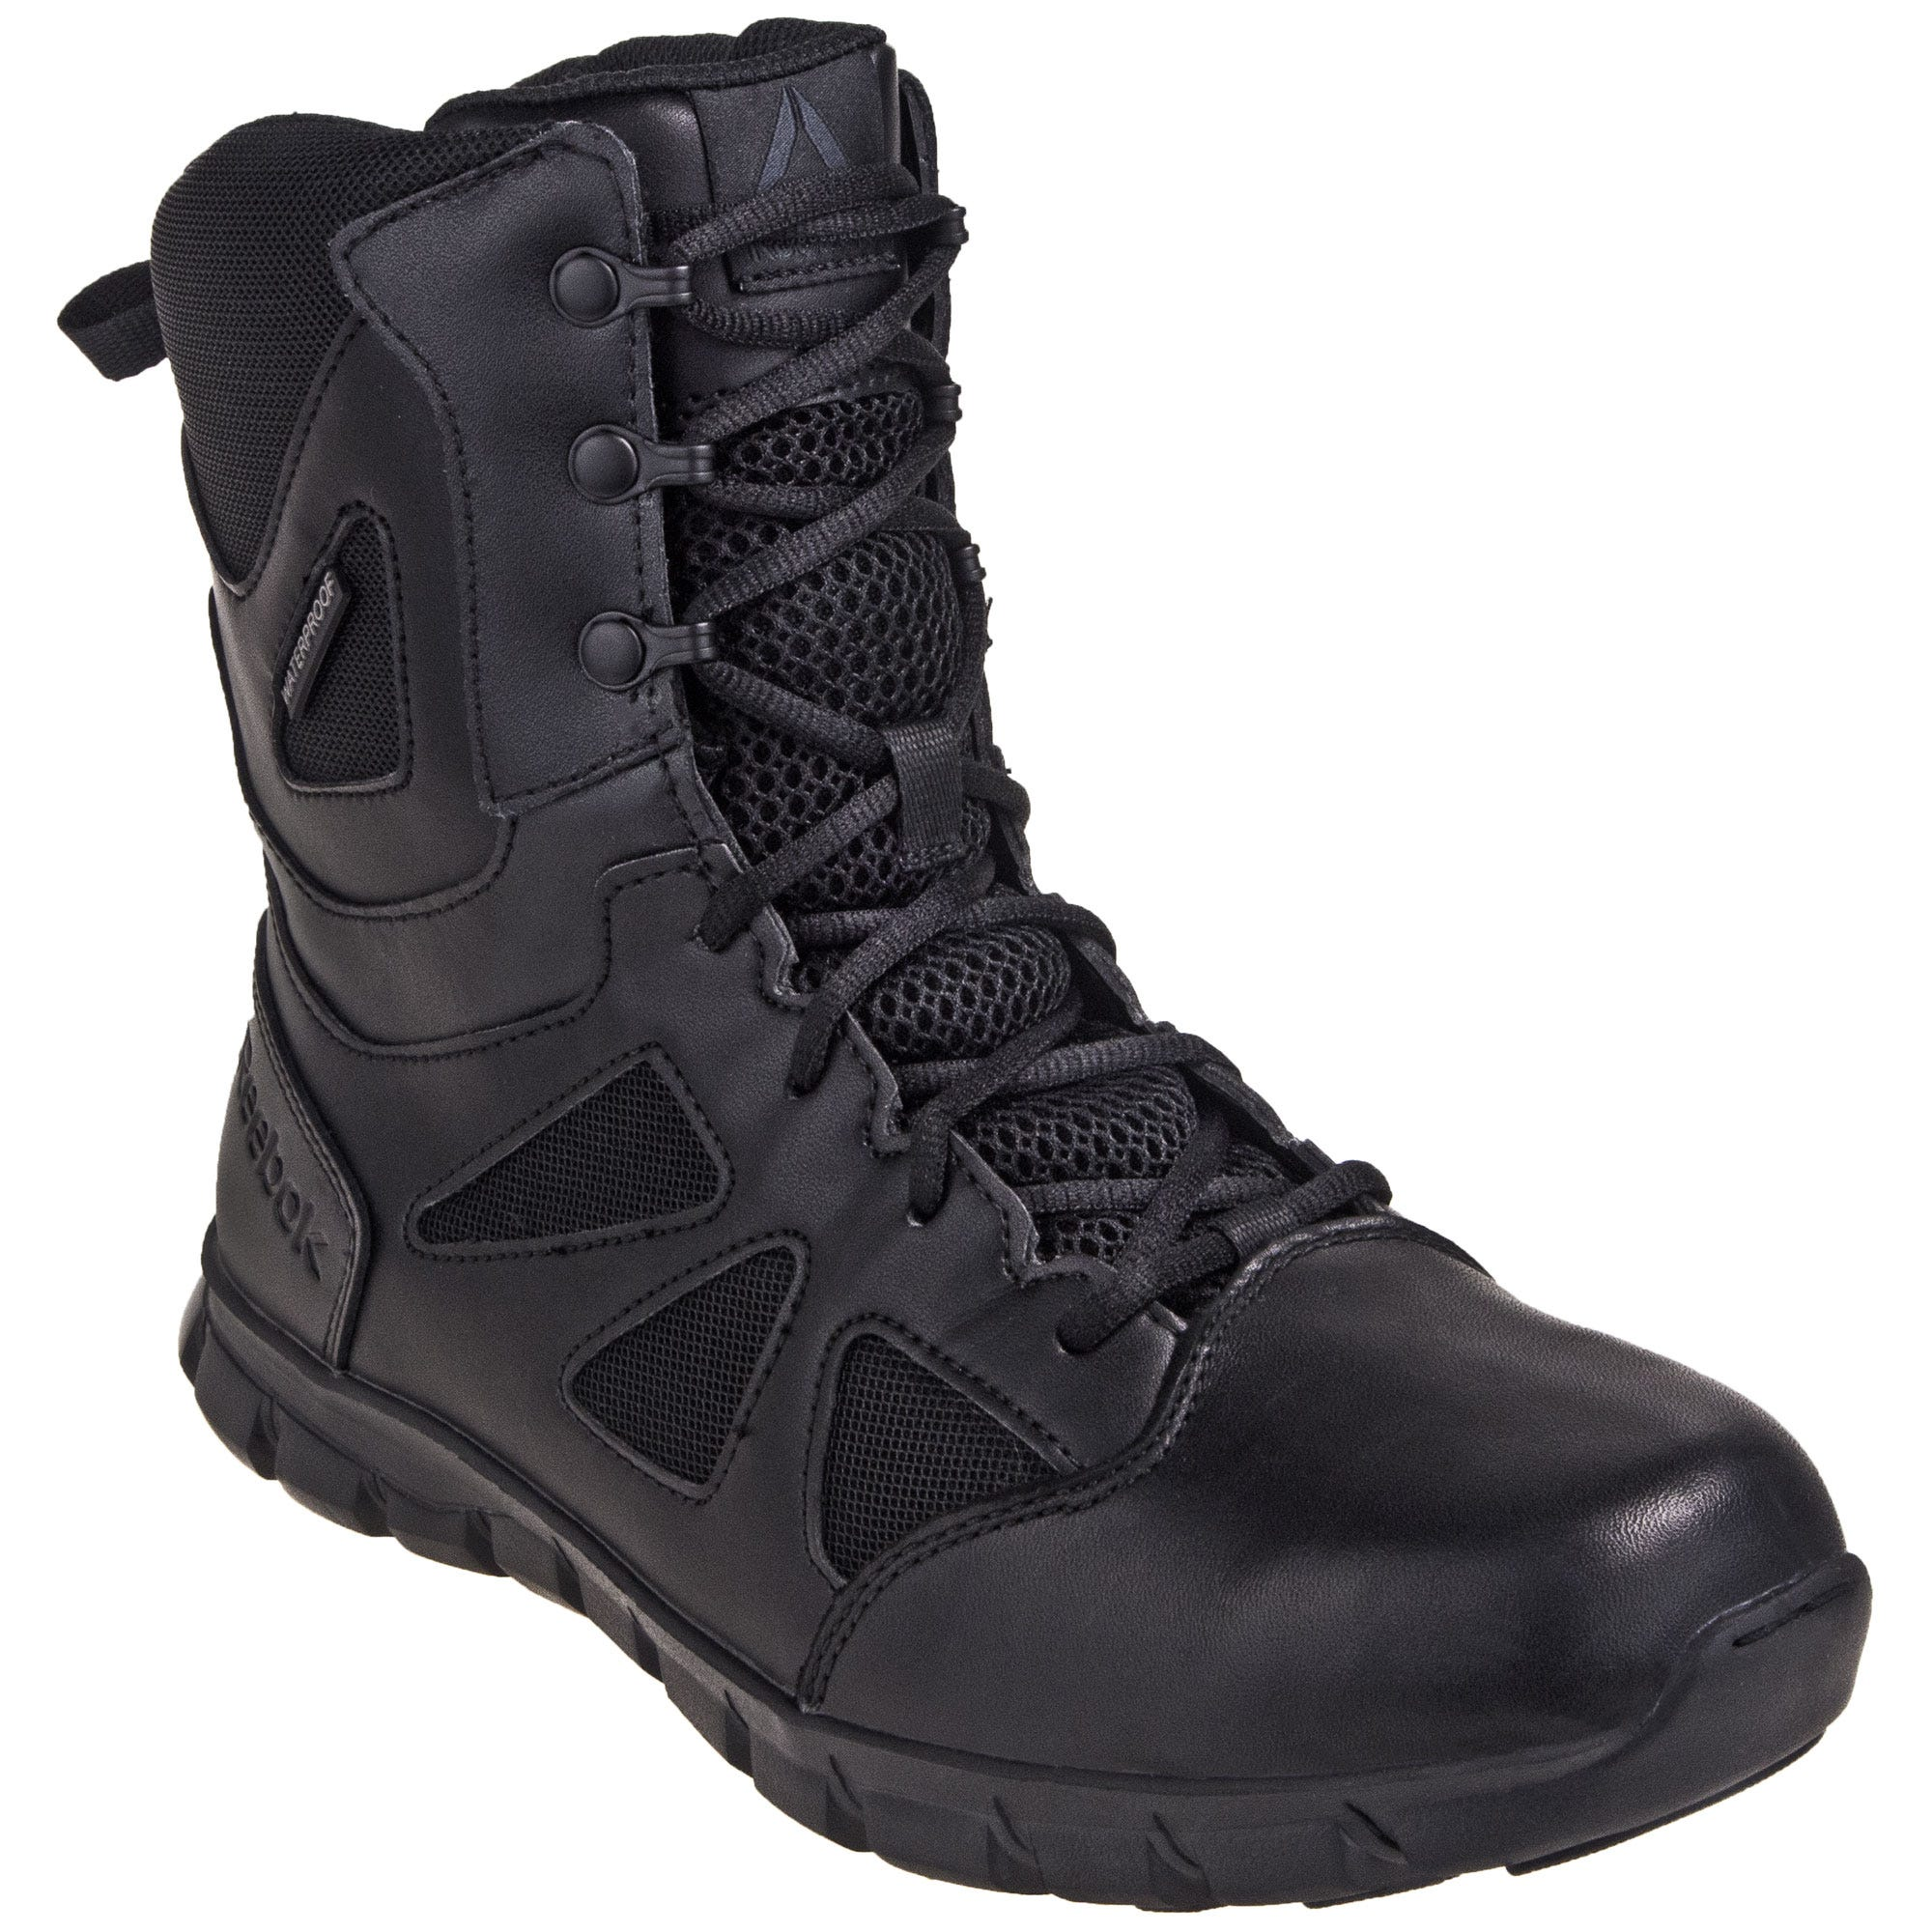 Reebok Women's Black Waterproof EH Sublite 8-Inch Cushion RB806 Tactical Boots